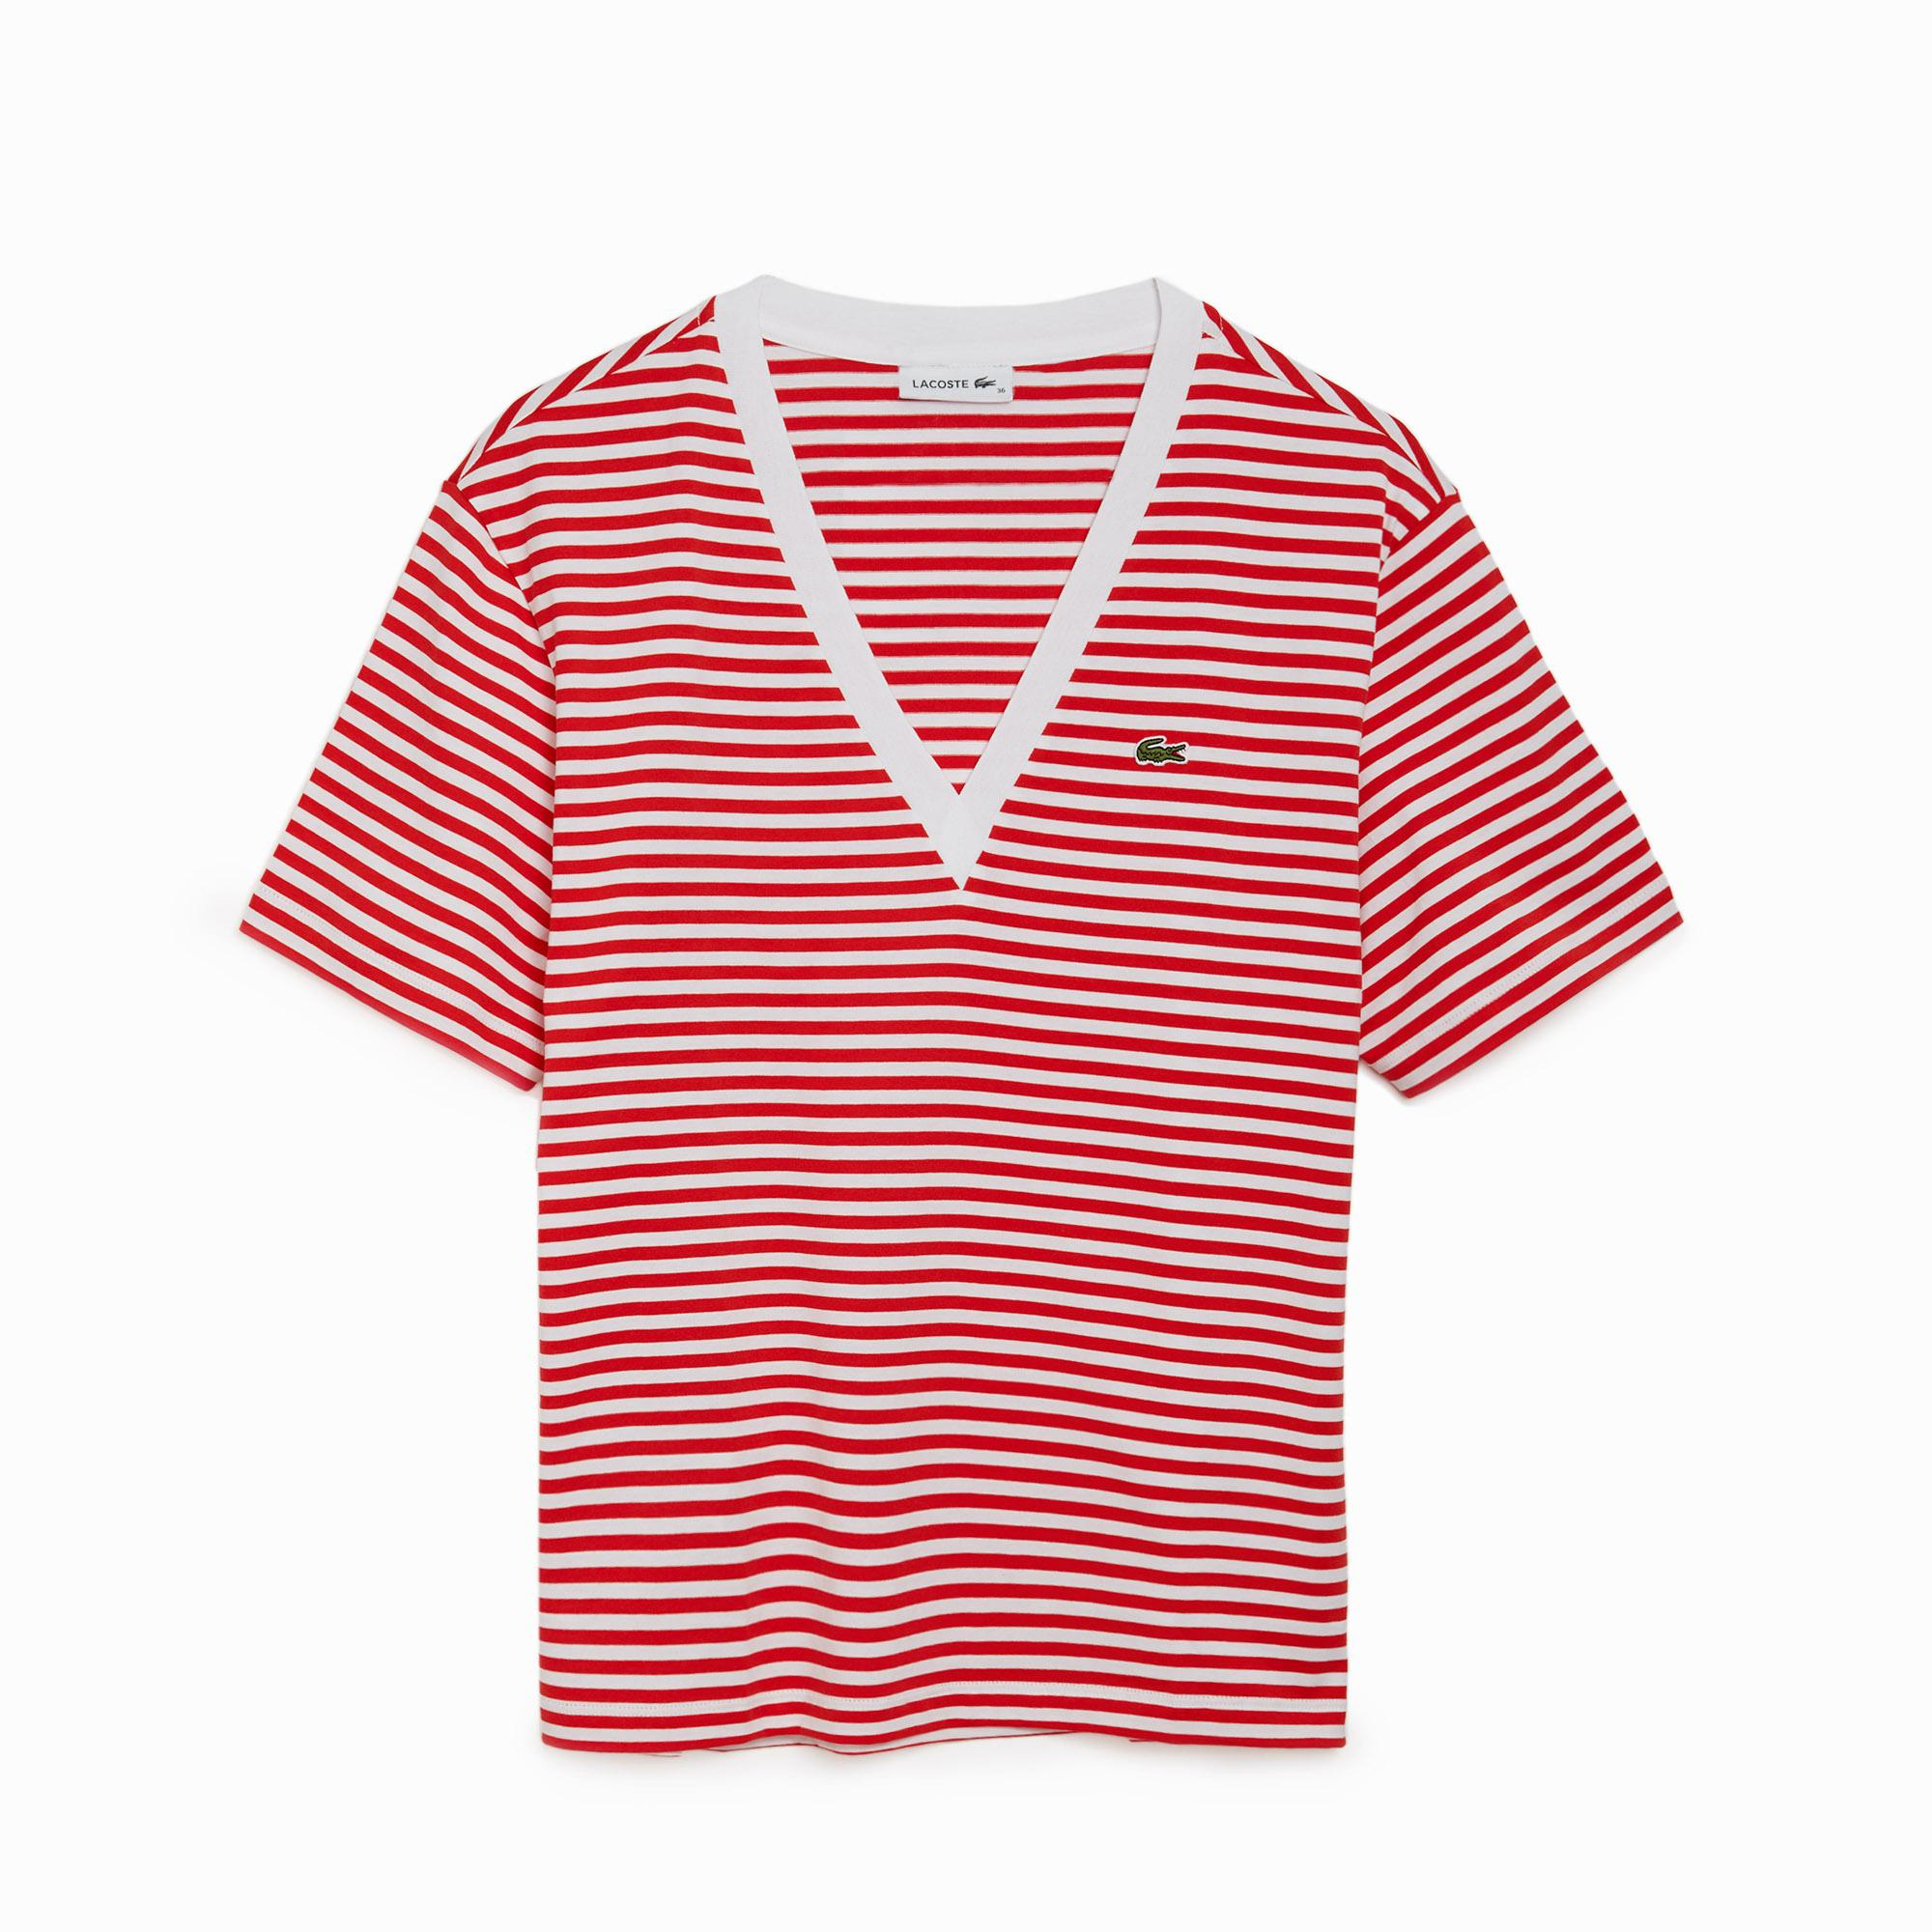 Lacoste Women's Striped V-Neck Cotton T-Shirt